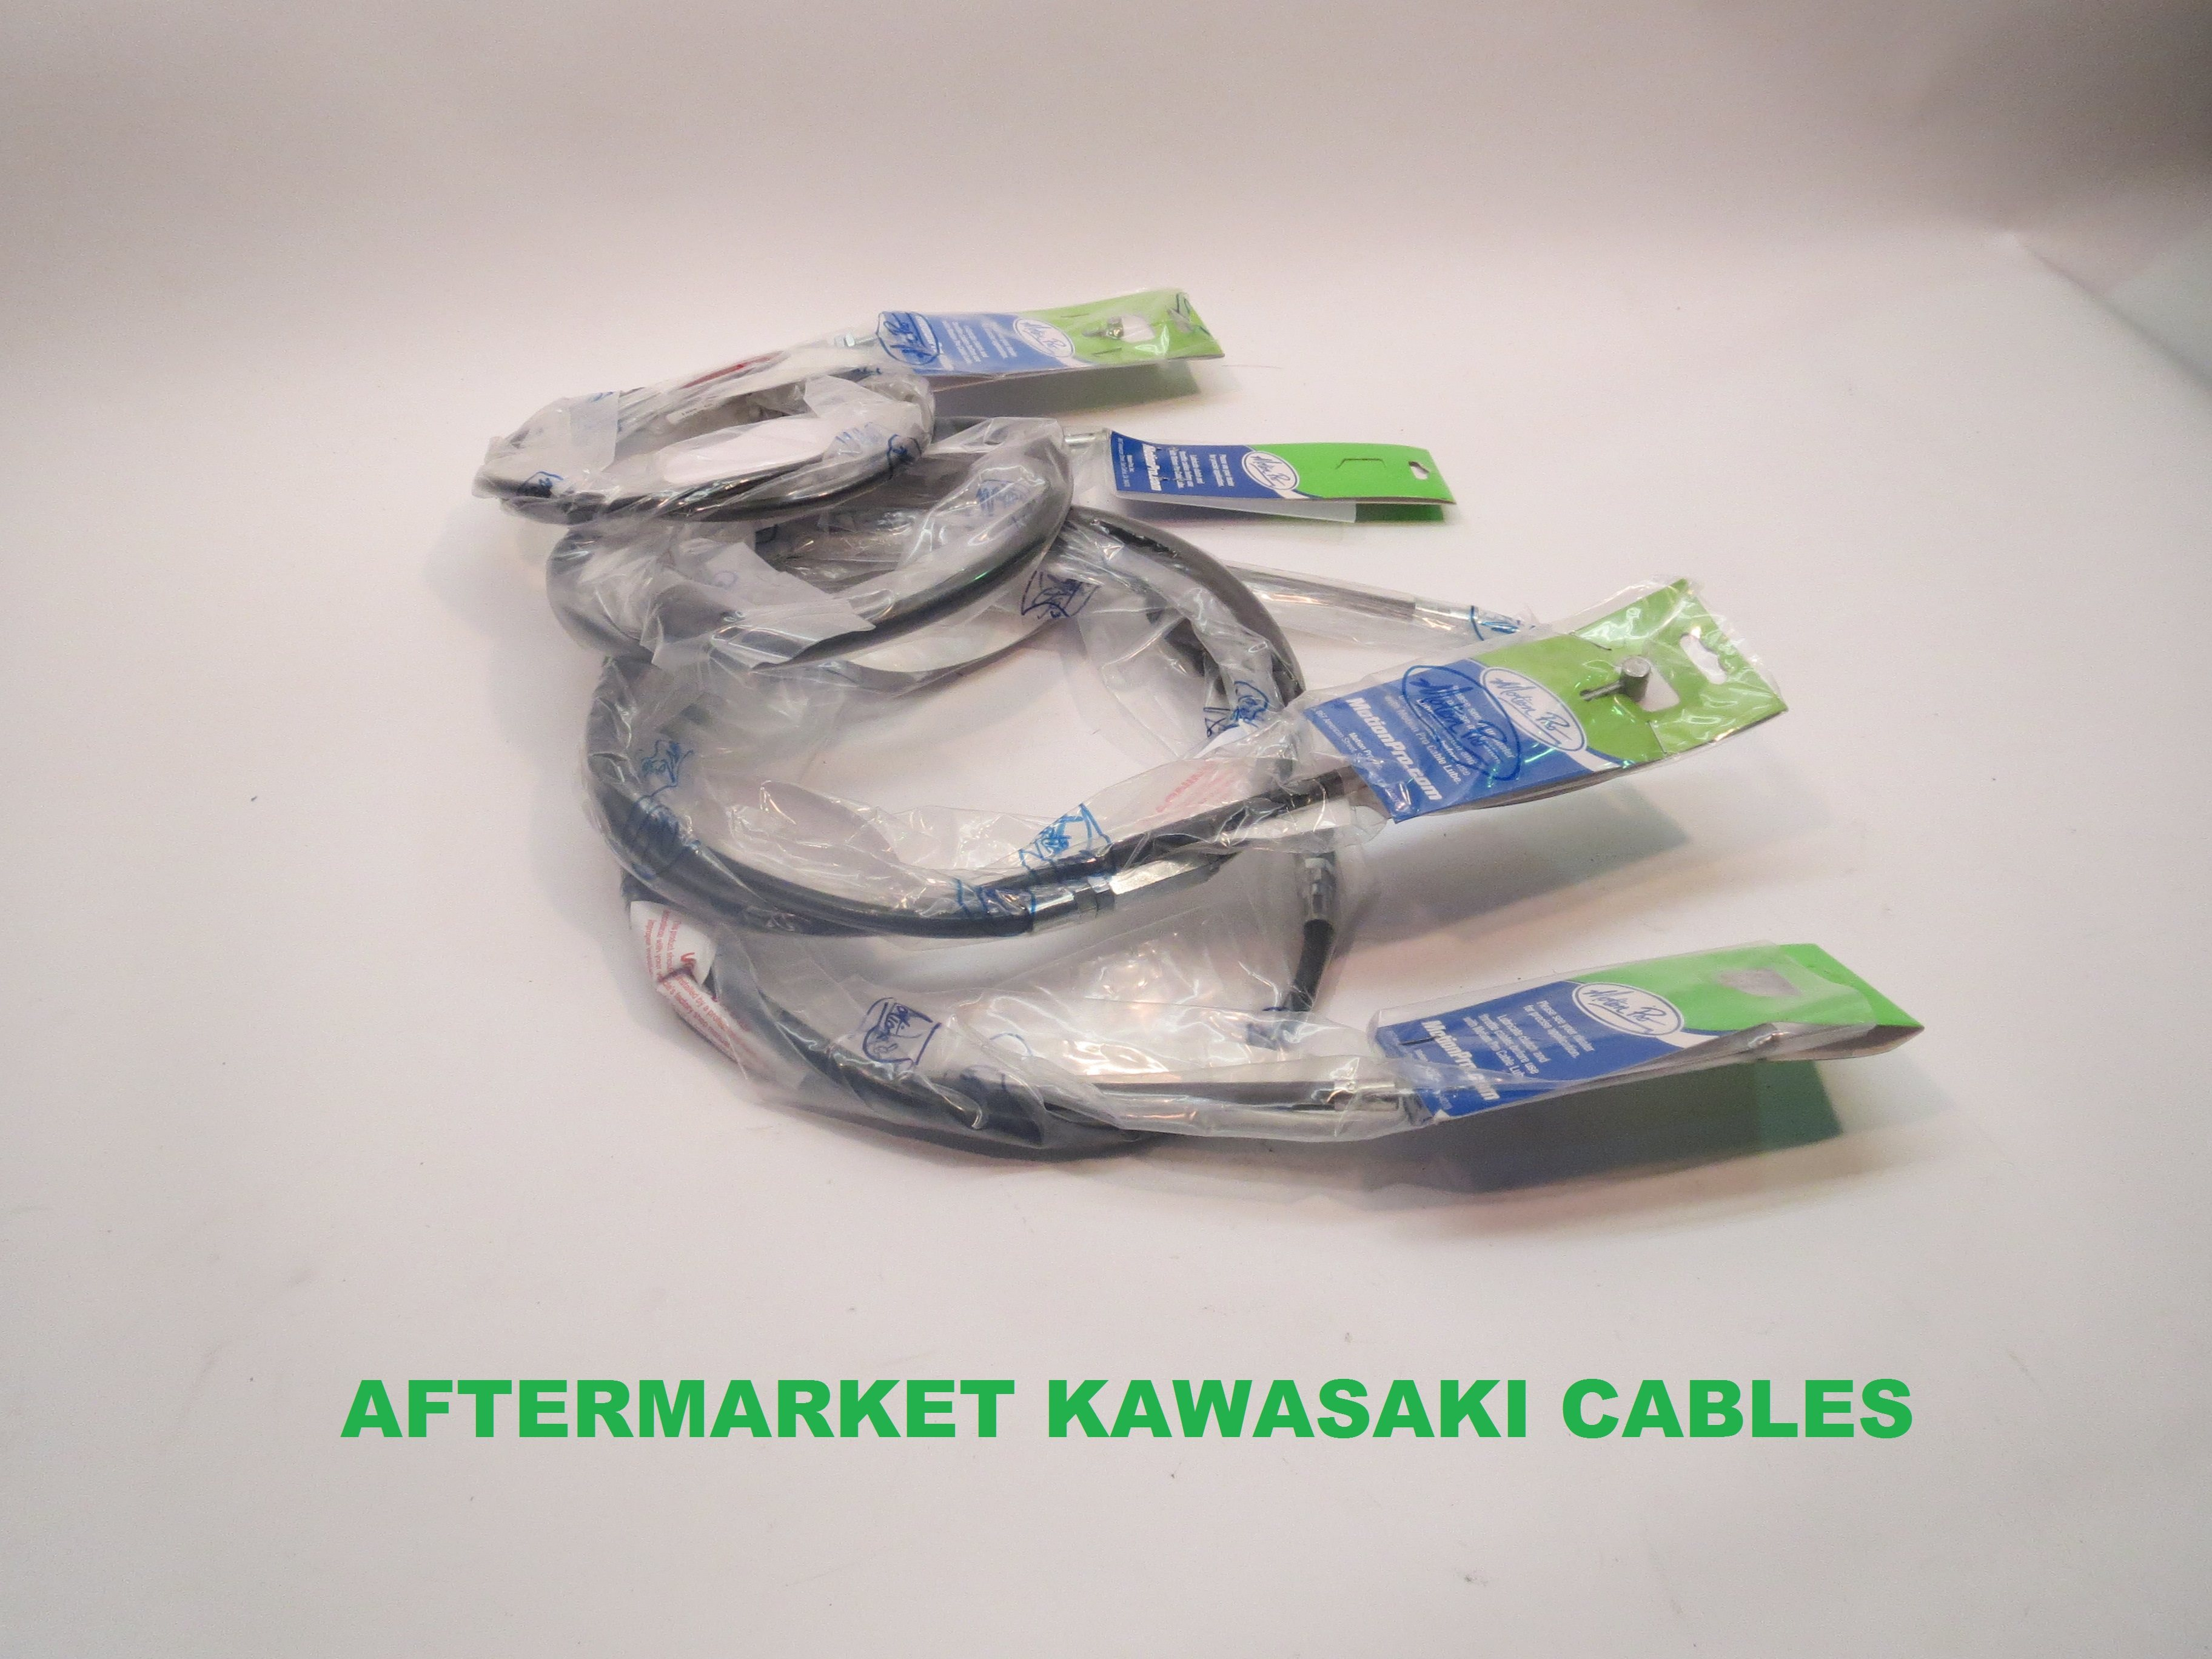 New Cable Connection Clutch Cable PC16-1393 for Kawasaki KX125 1999